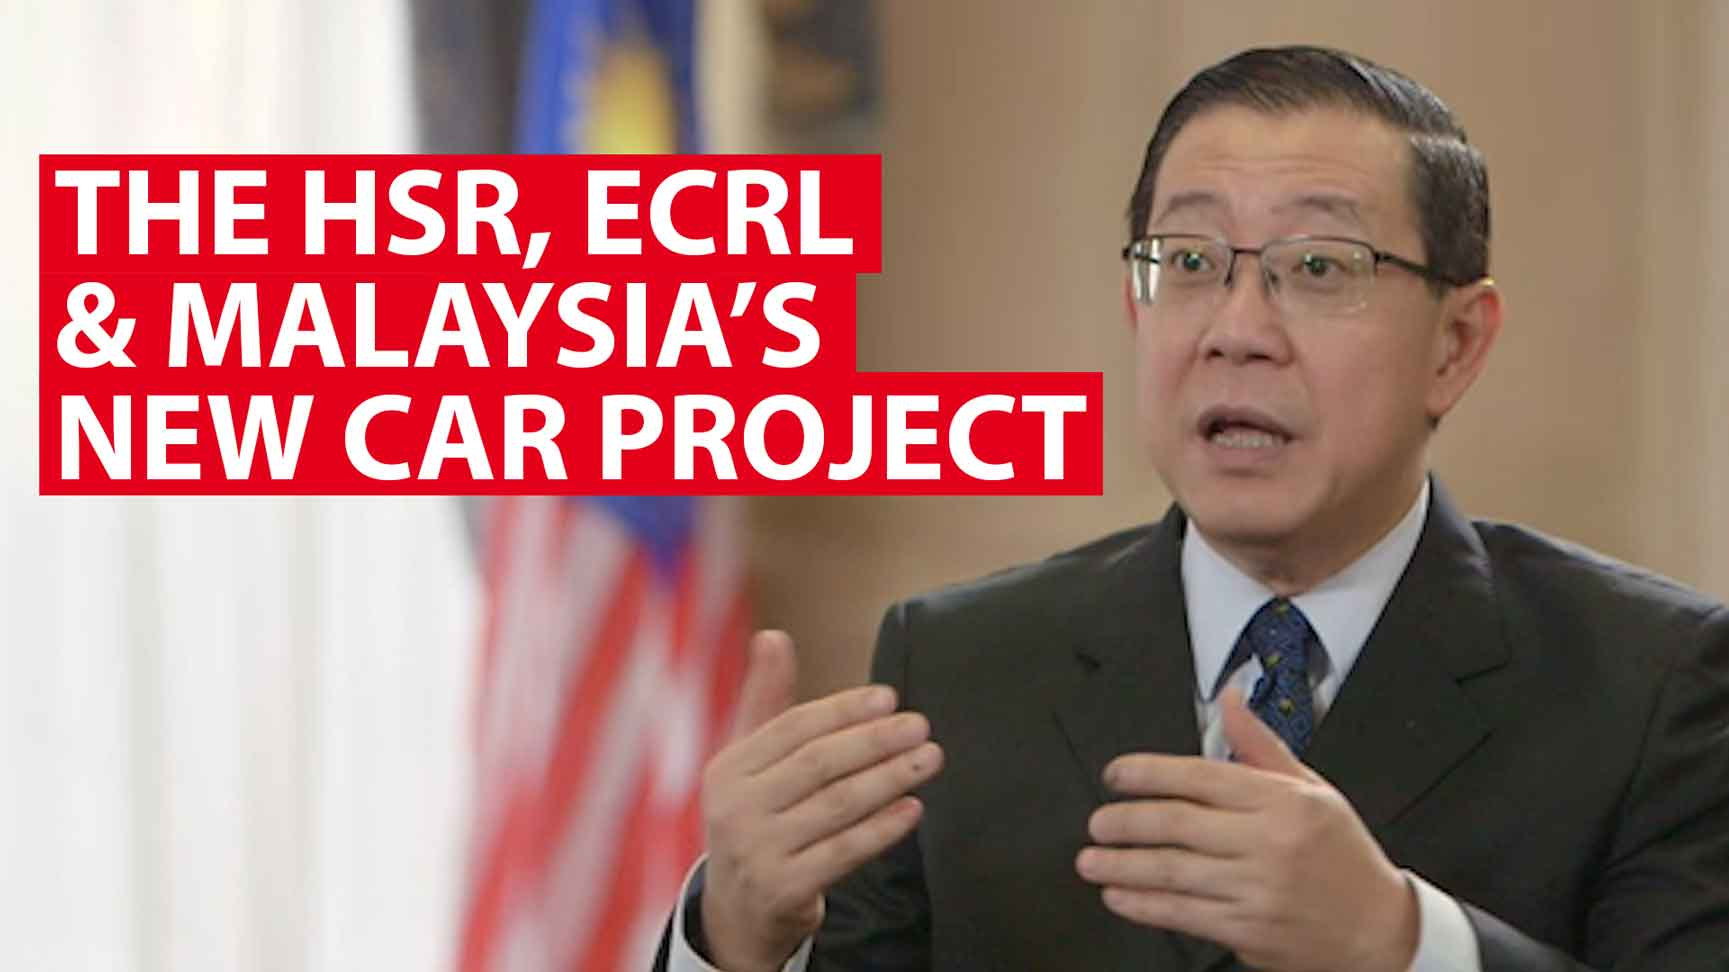 The HSR & Malaysia's new car project: Conversation with Lim Guan Eng